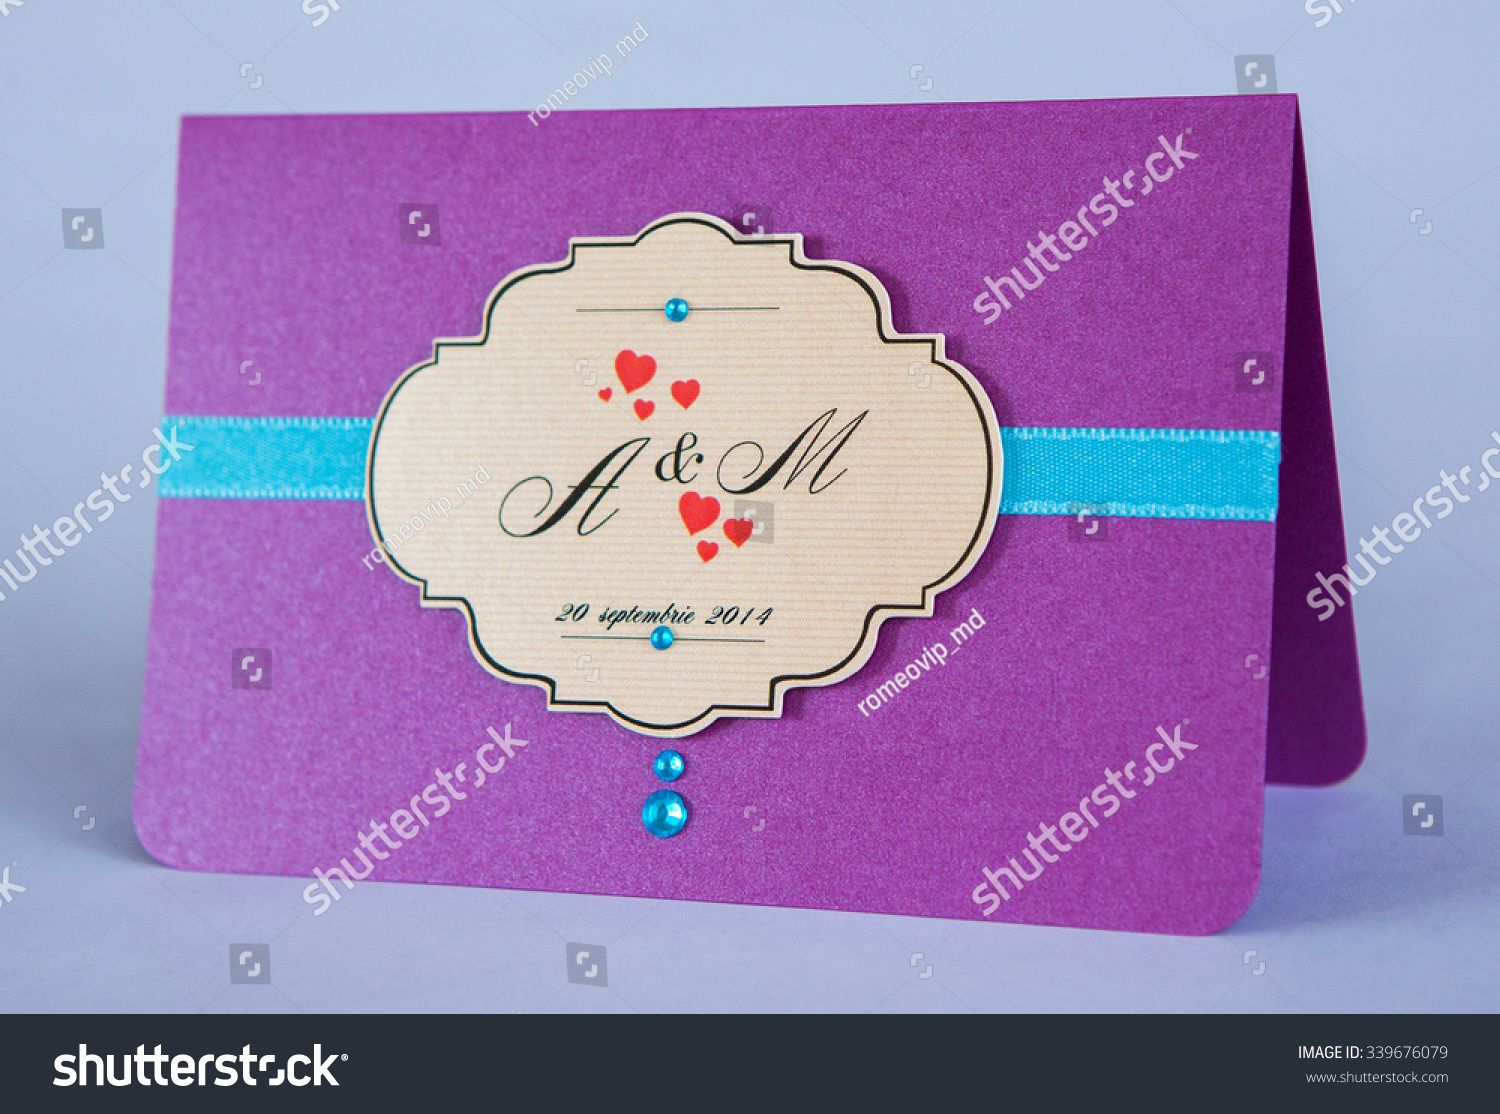 Wedding Invitation Card Handmade Wedding Invitation Stock Photo ...